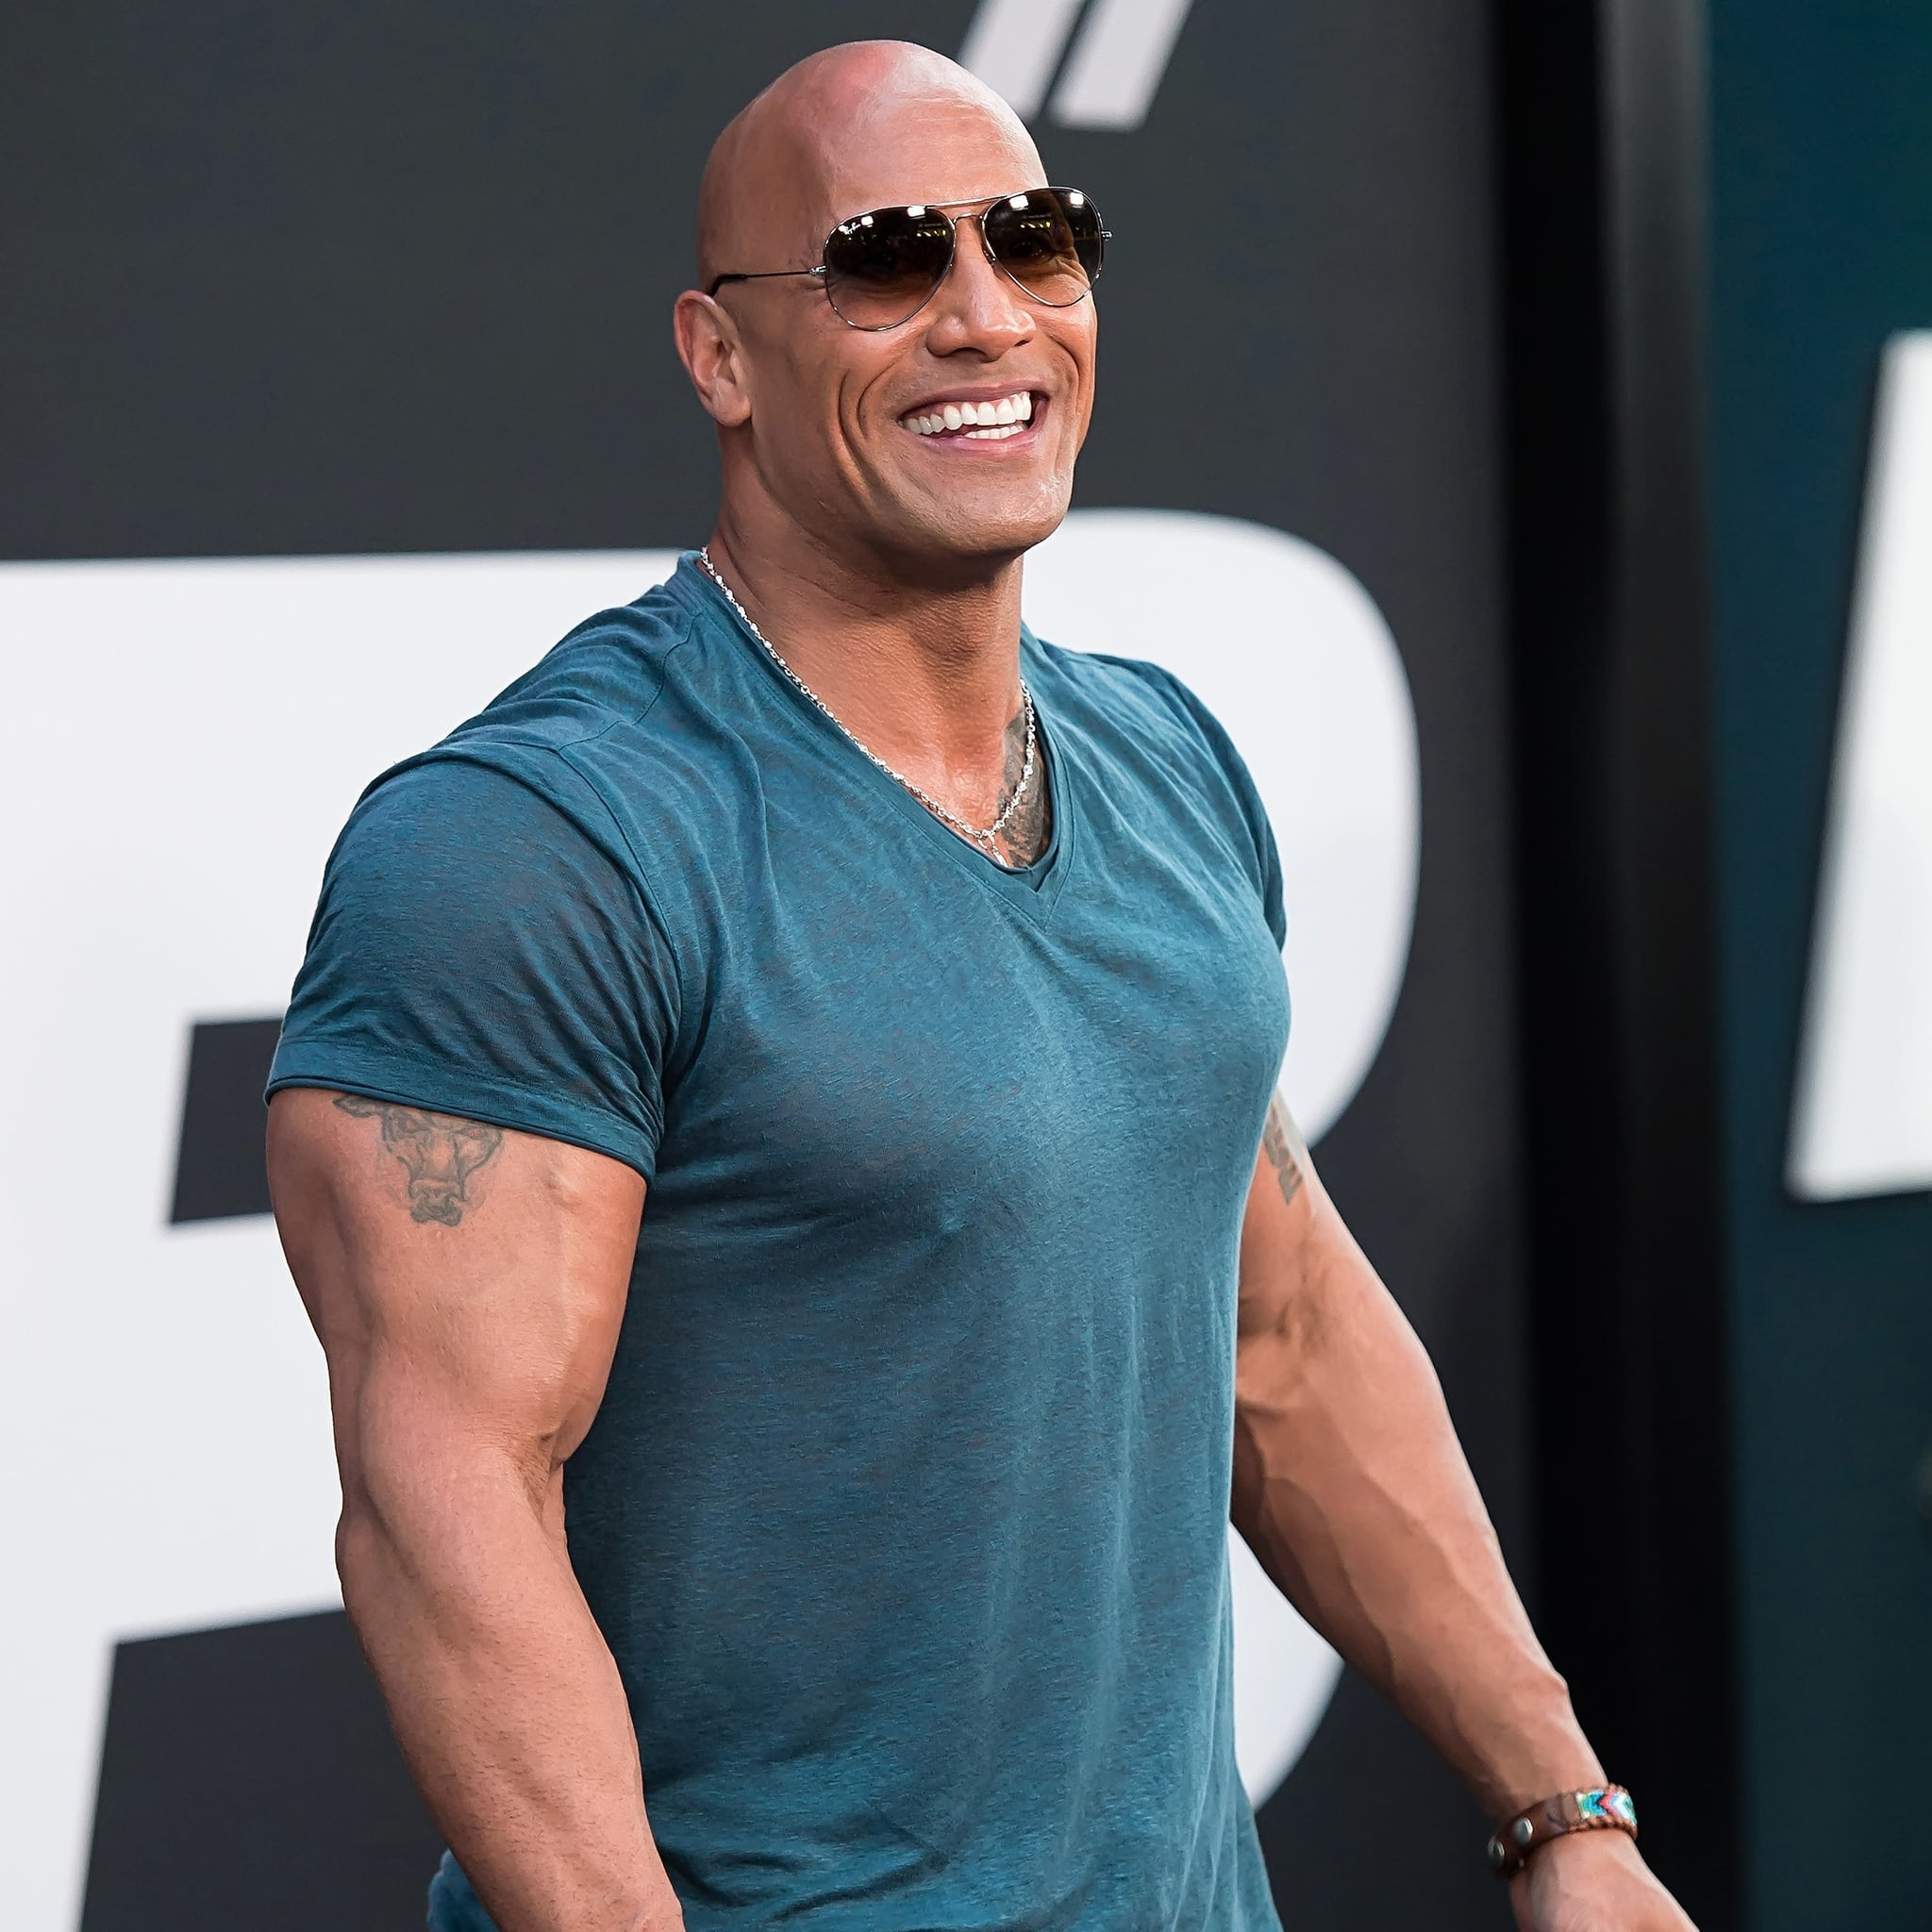 Dwayne Johnson's Net Worth – His Struggles and Career in Acting